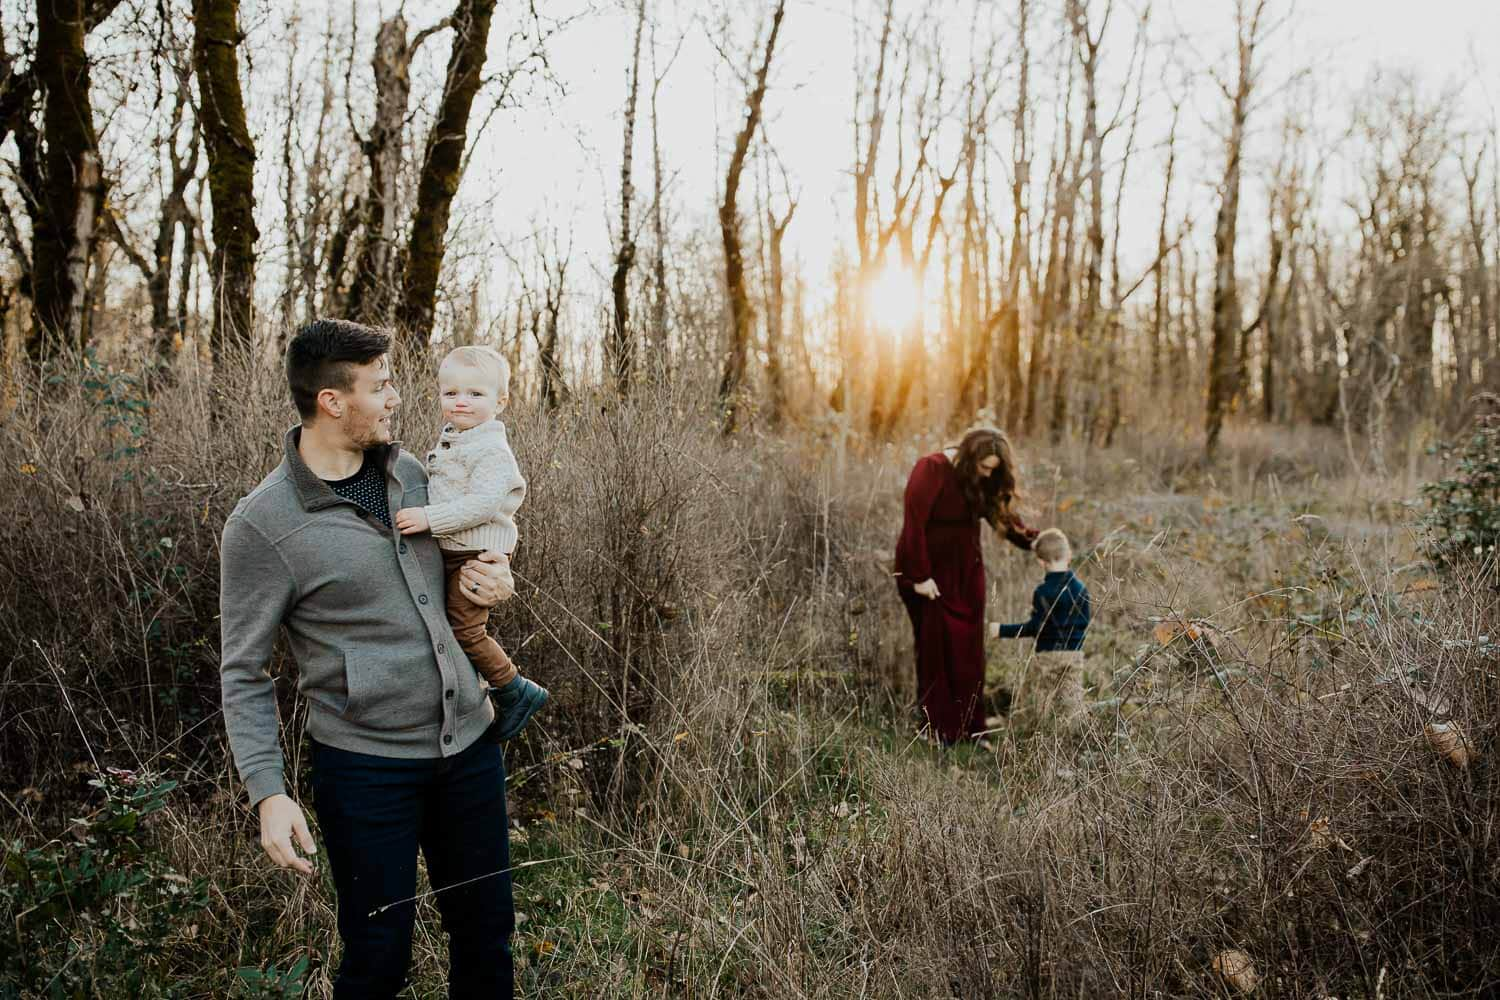 family of four exploring a park in the fall season